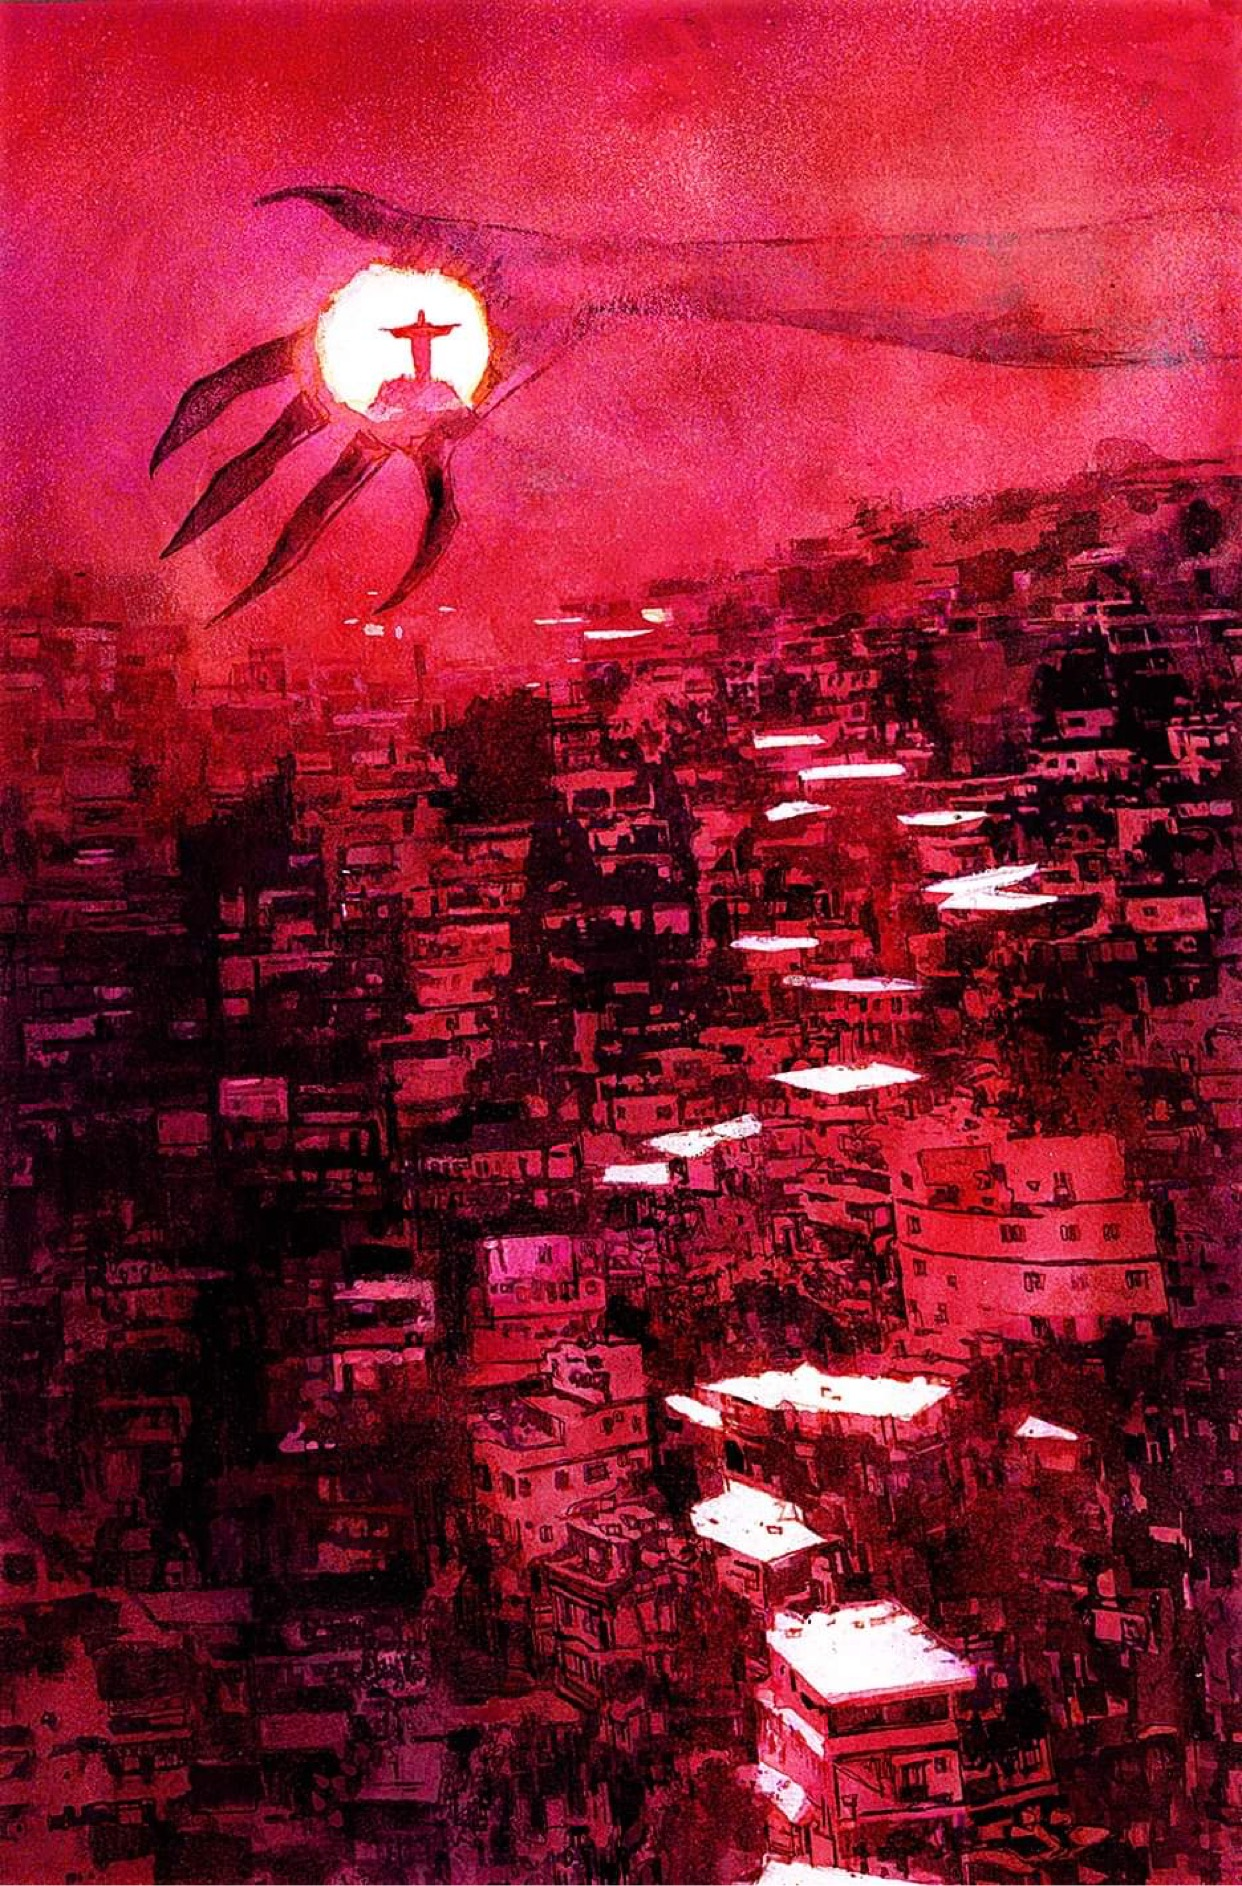 THE HOSTAGE: Dig This Gorgeous Art by ROSS, SIENKIEWICZ and MORE